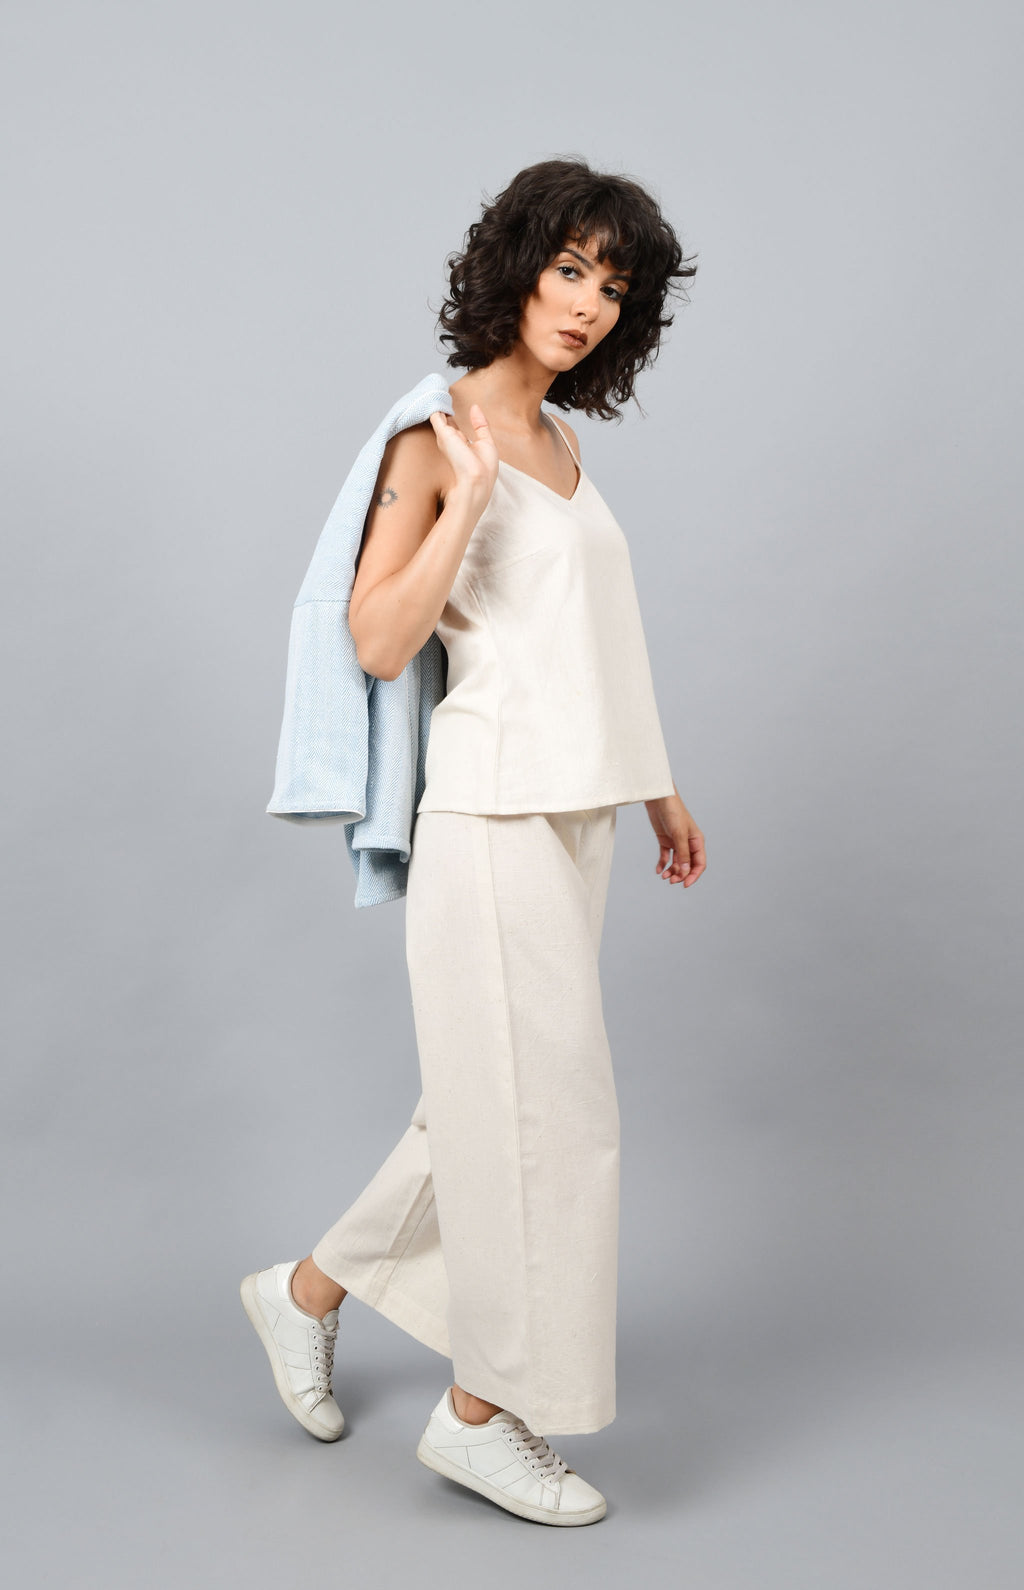 A model holding an anti-fit short grey shrug made in pointed twill with handspun and handwoven khadi cotton in her hands on the back while walking.